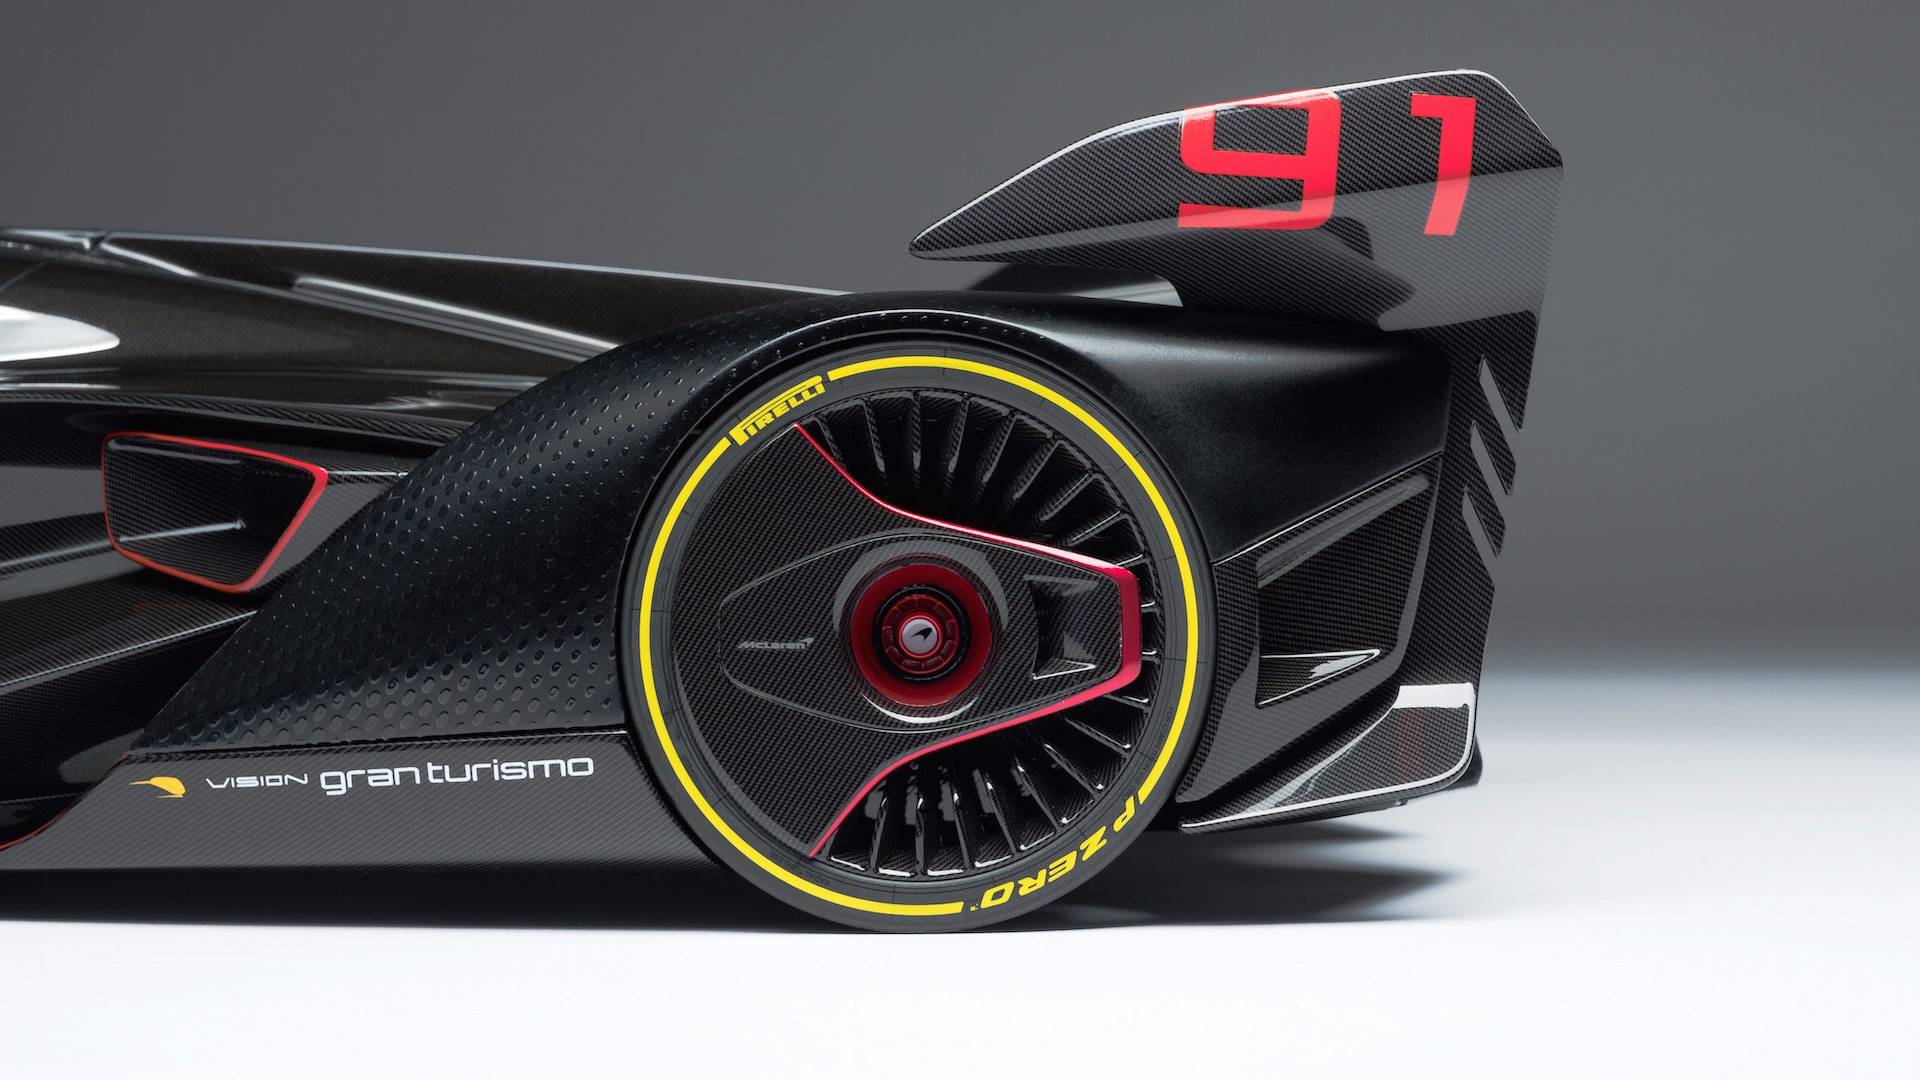 mclaren-ultimate-vision-gt-scale-model (19)